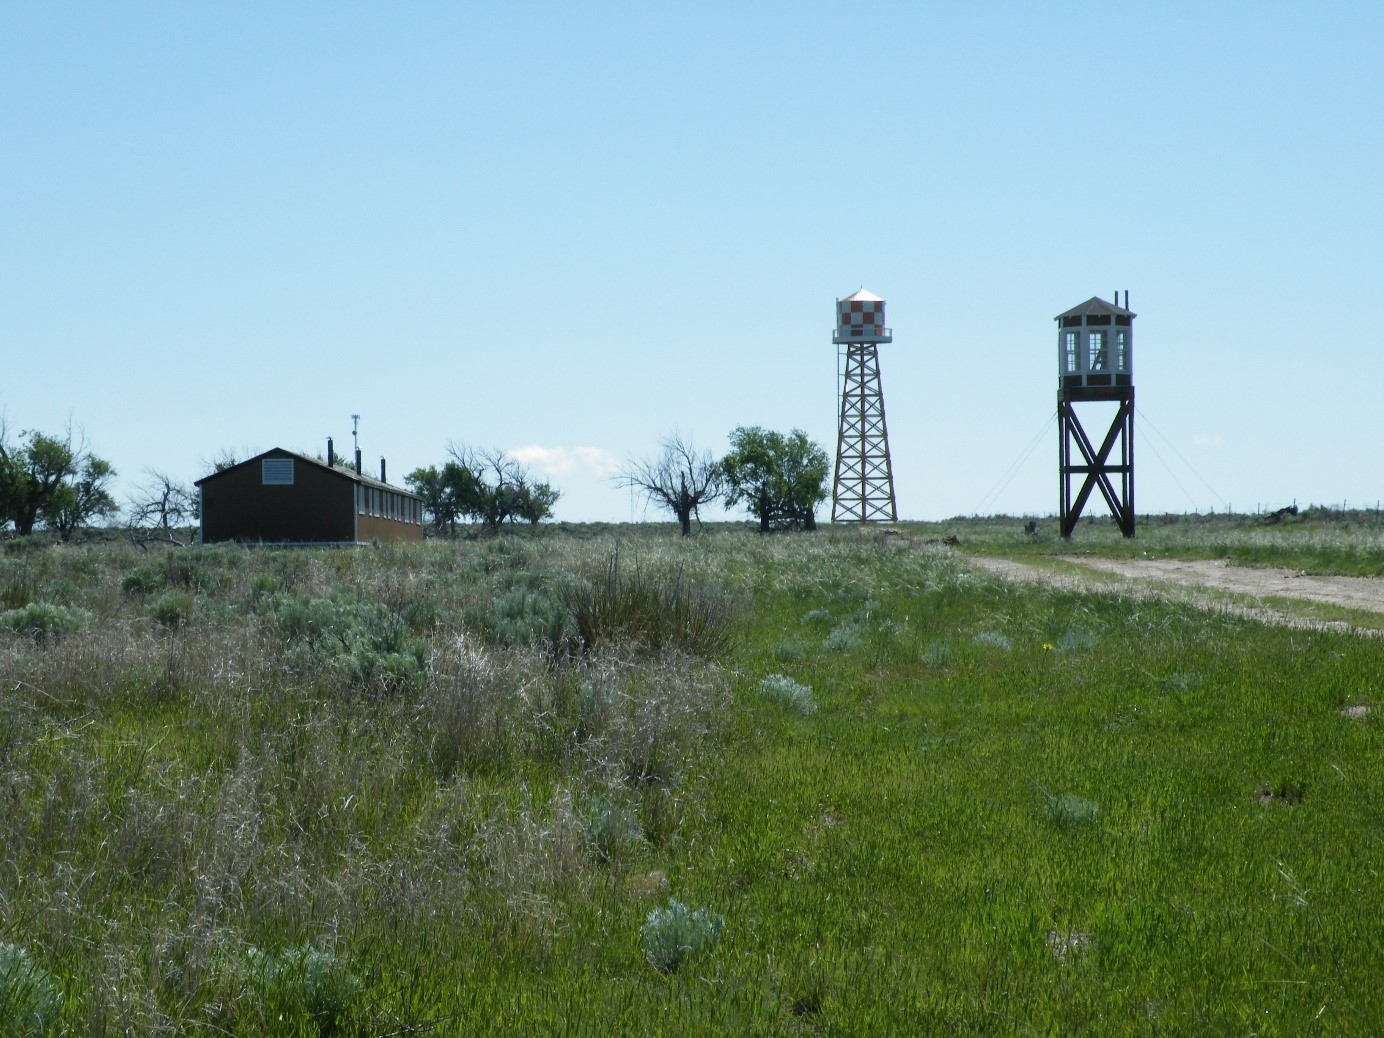 Restored barrack, water tower, and guard tower at Amache. Photo by Mitch Homma.